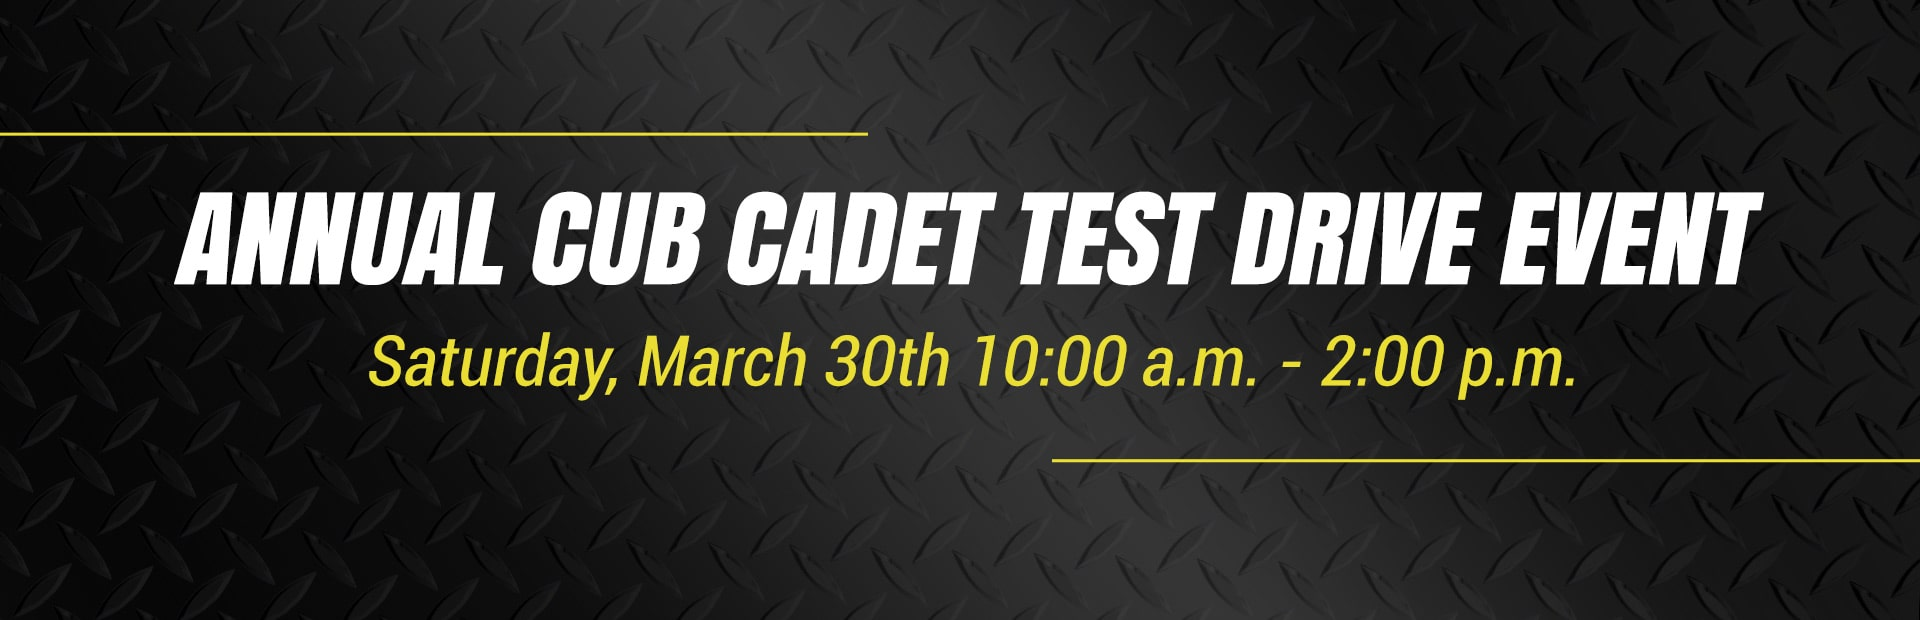 Annual Cub Cadet Test Drive Event: Join us on Saturday, March 30th!